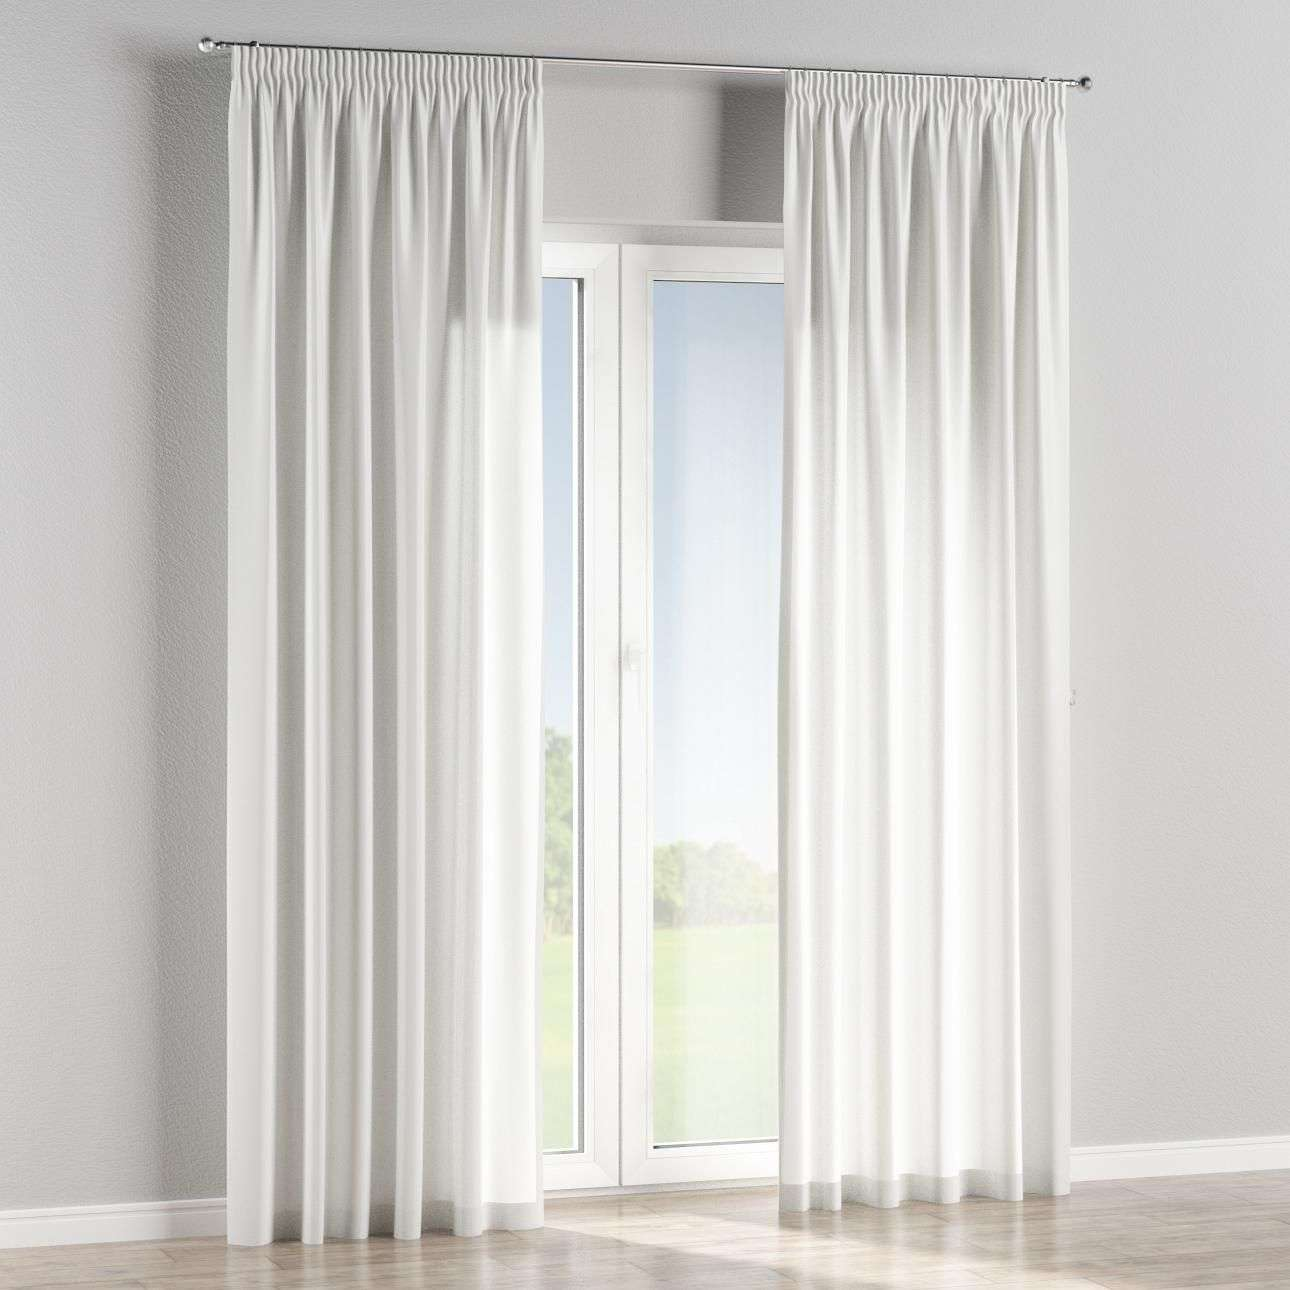 Pencil pleat curtains in collection Christmas, fabric: 629-16